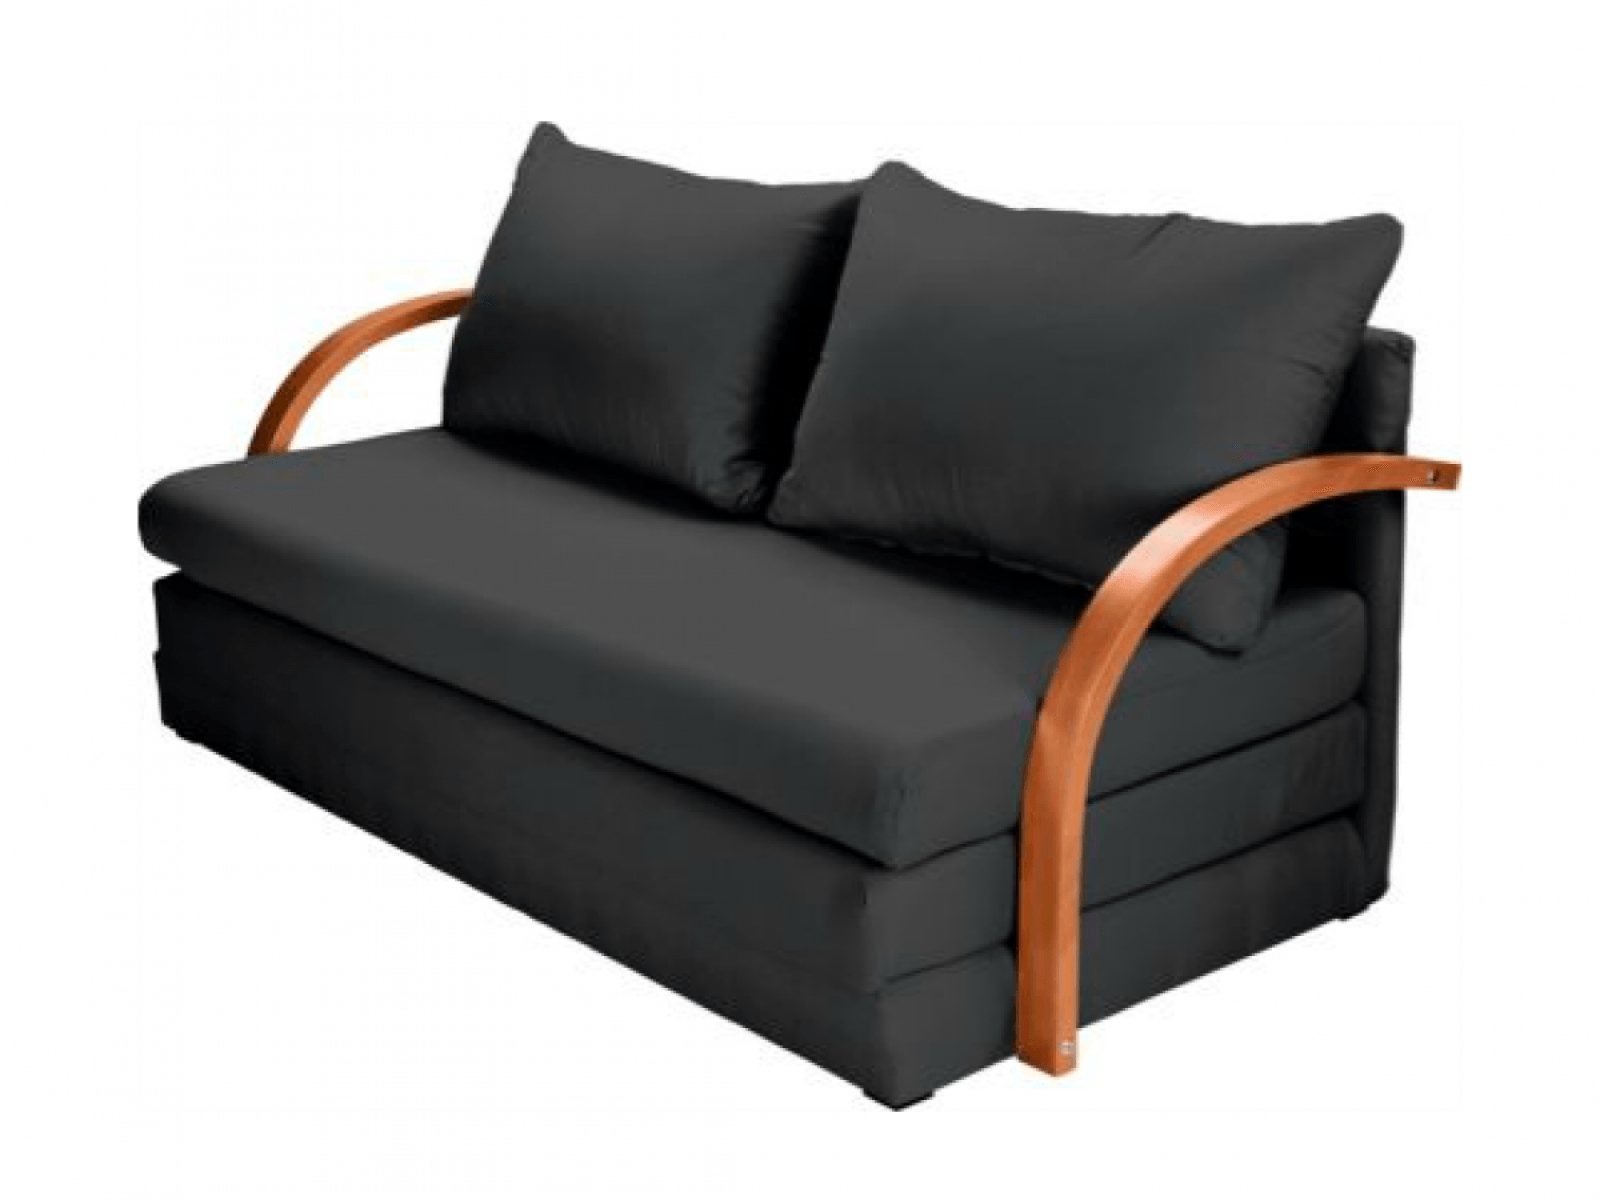 Sofa Beds Chairs Sofa Bed Chairs Home Interior Furniture